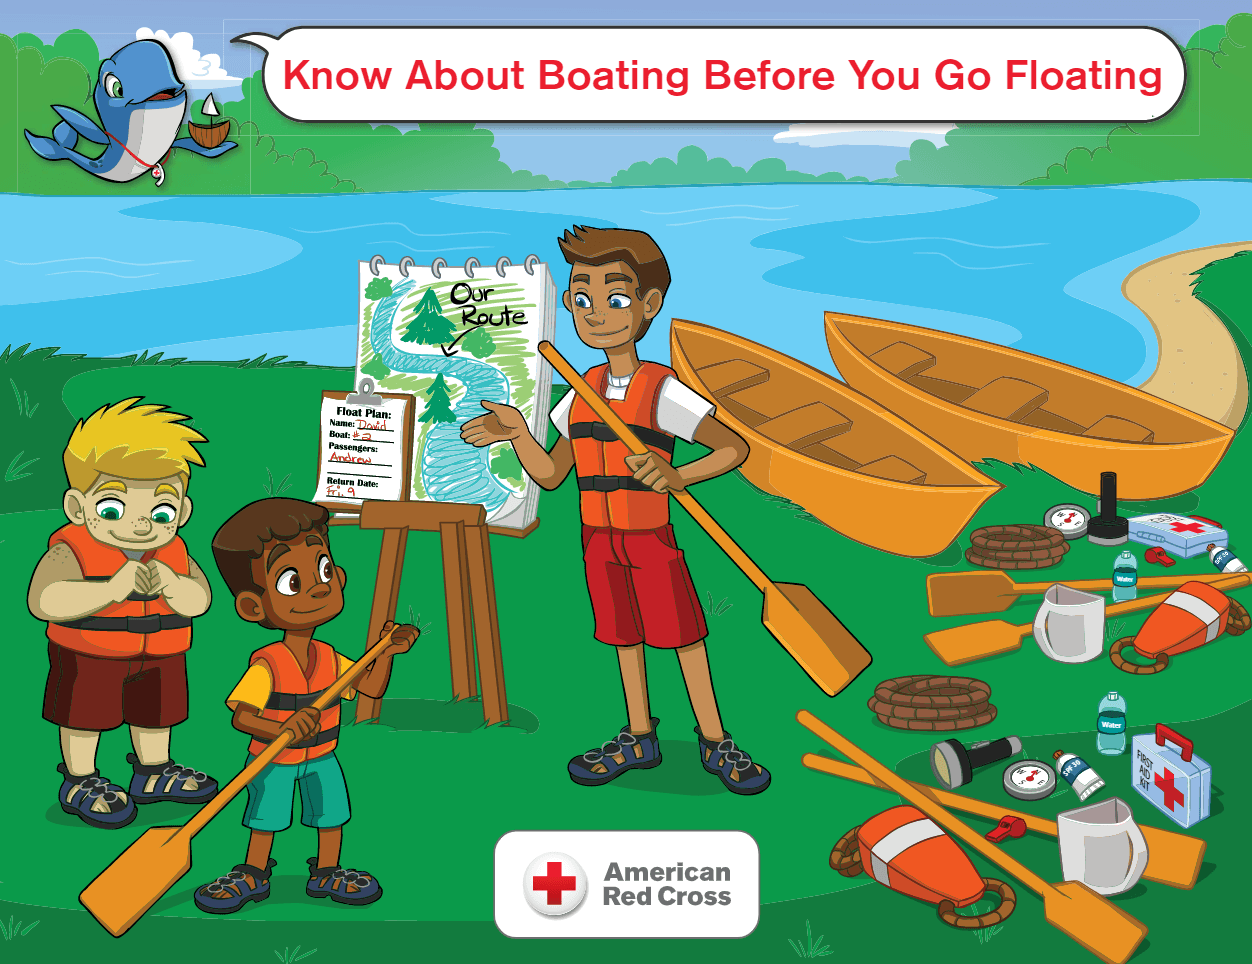 Know About Boating Before You Go Floating